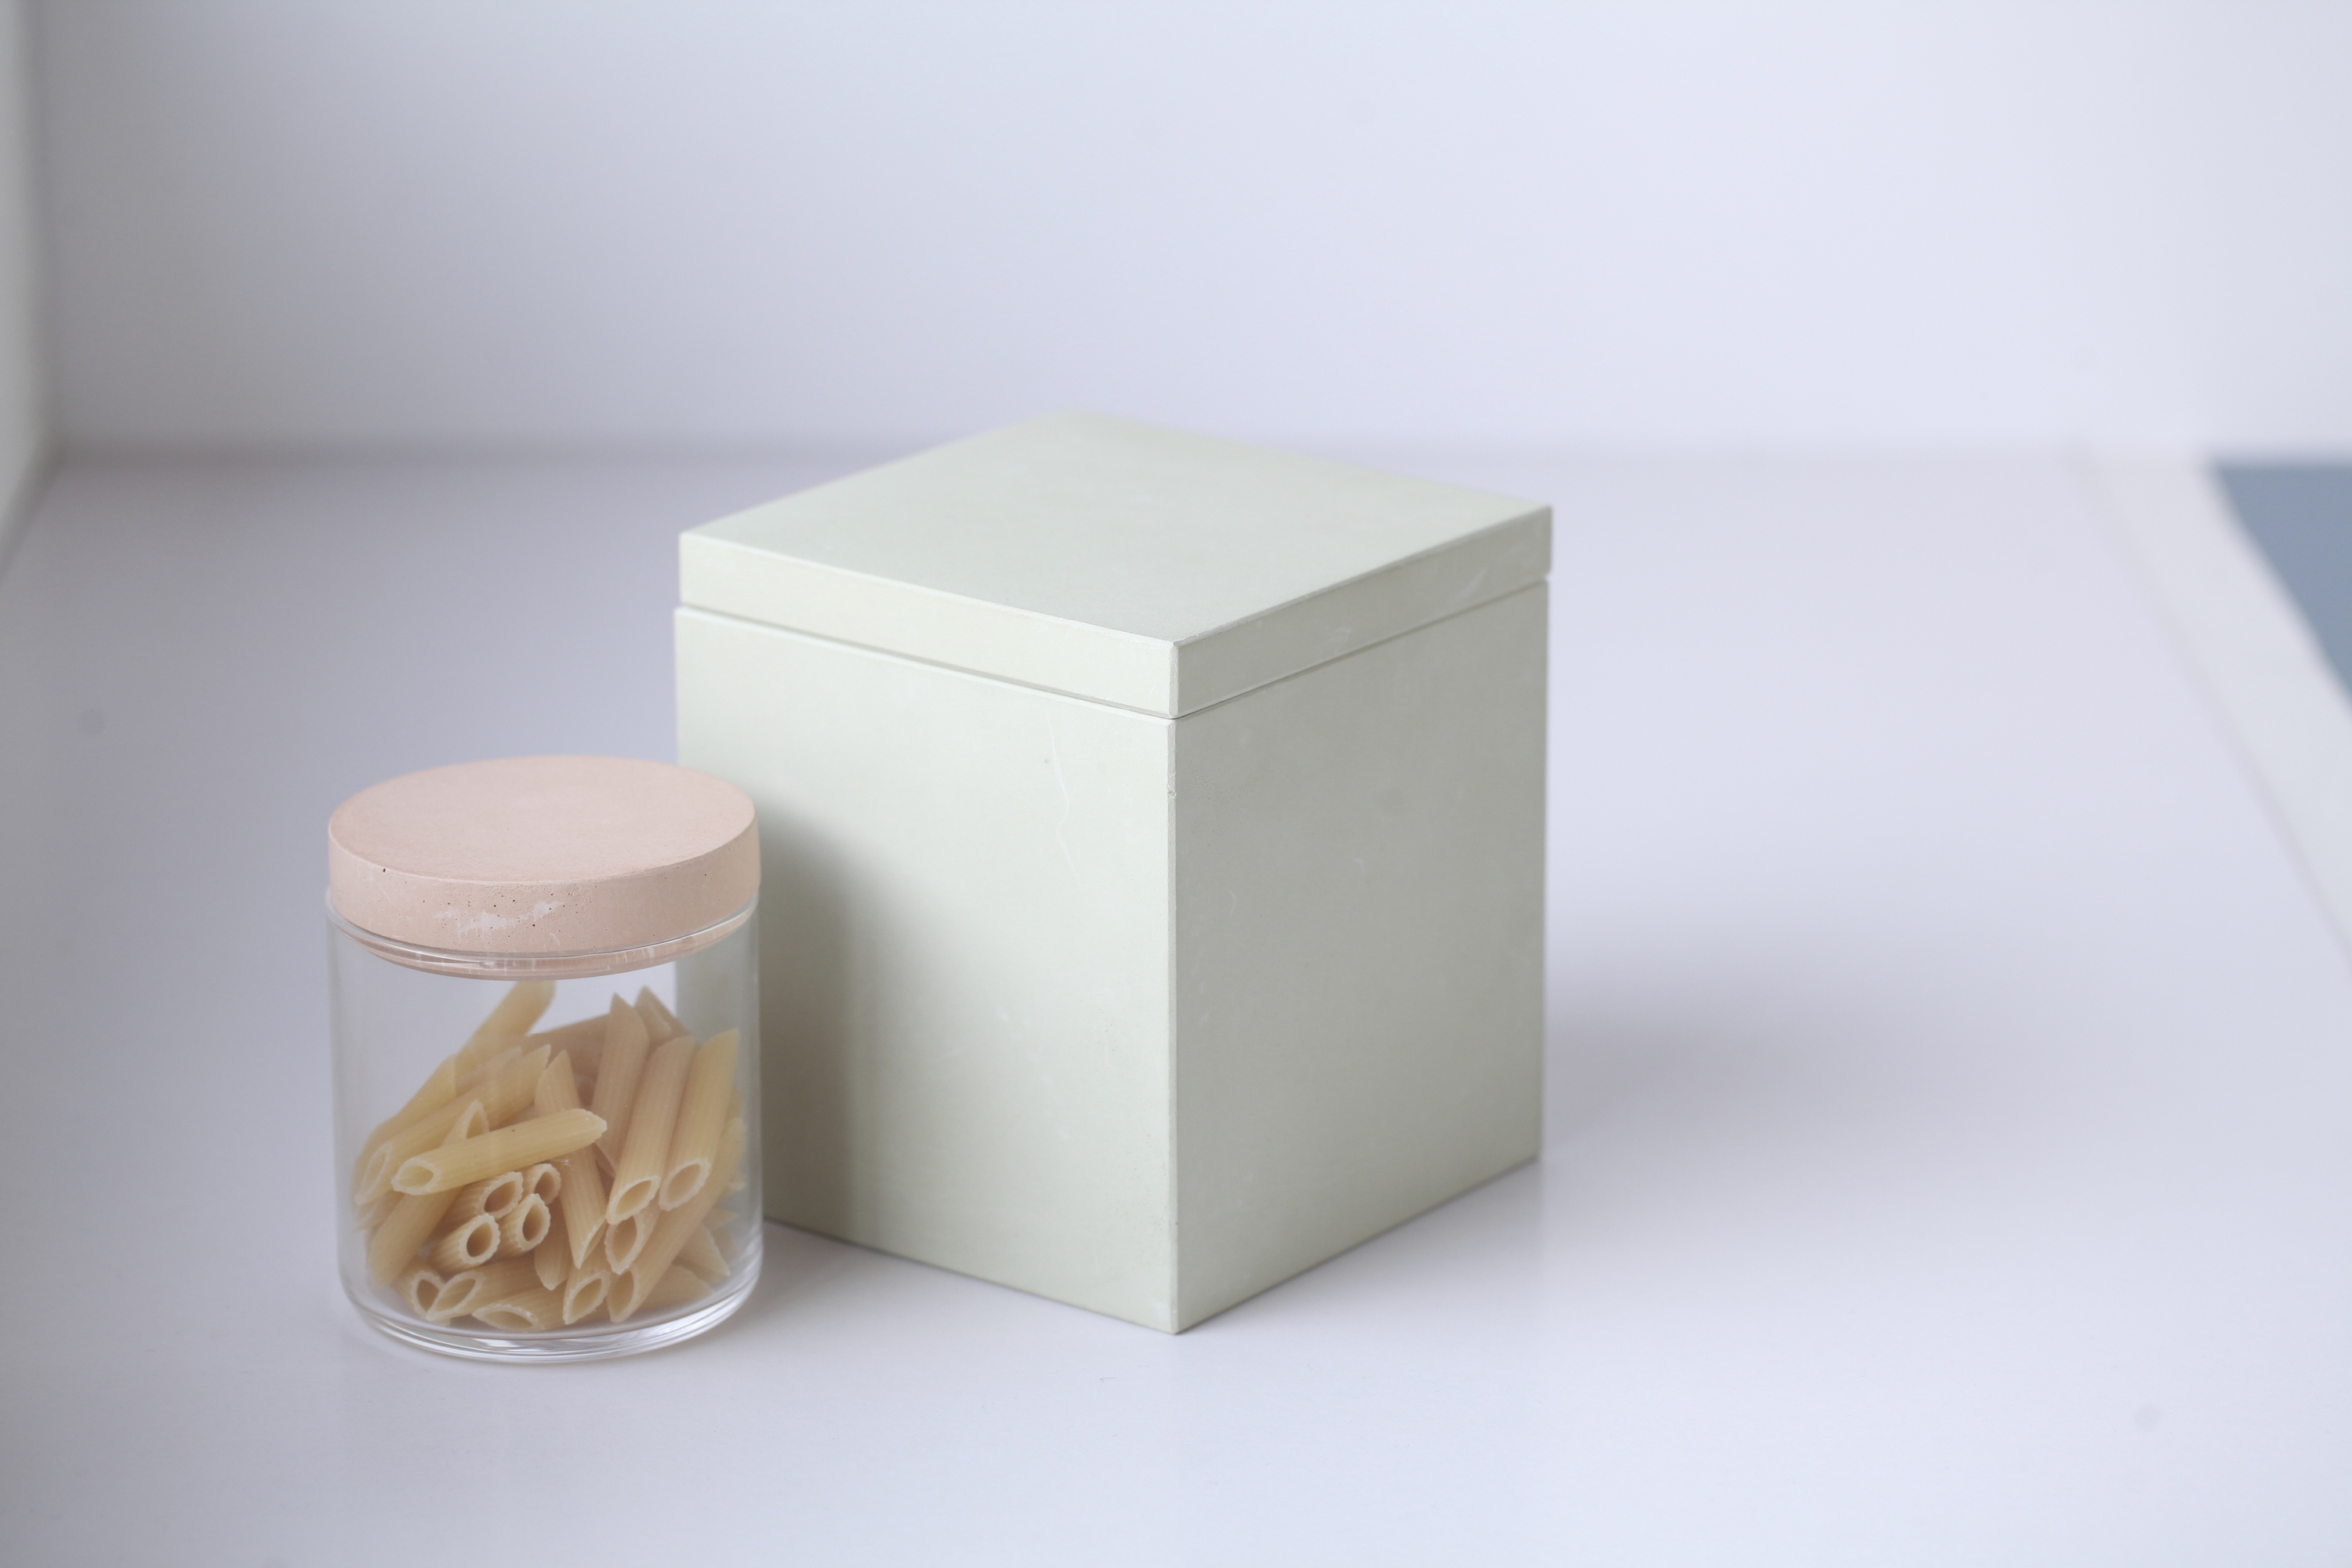 Koncent glass food container, Koncent square food container